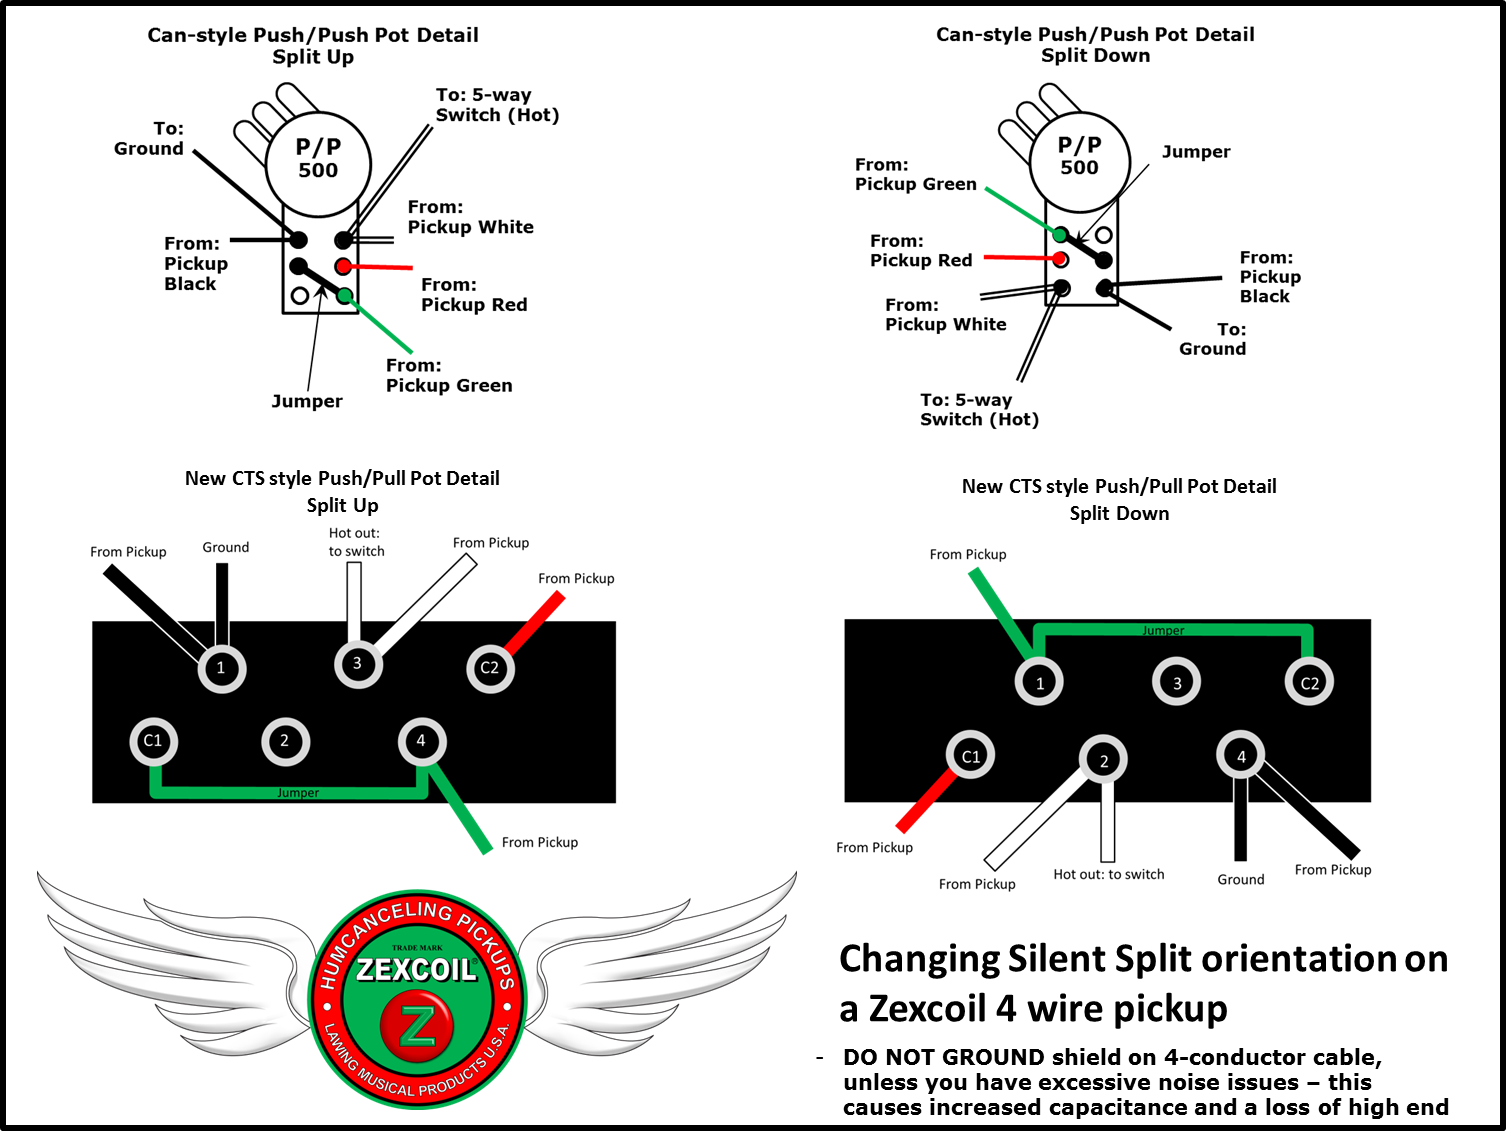 lawing musical products  u2014 zexcoil guitar pickups wiring